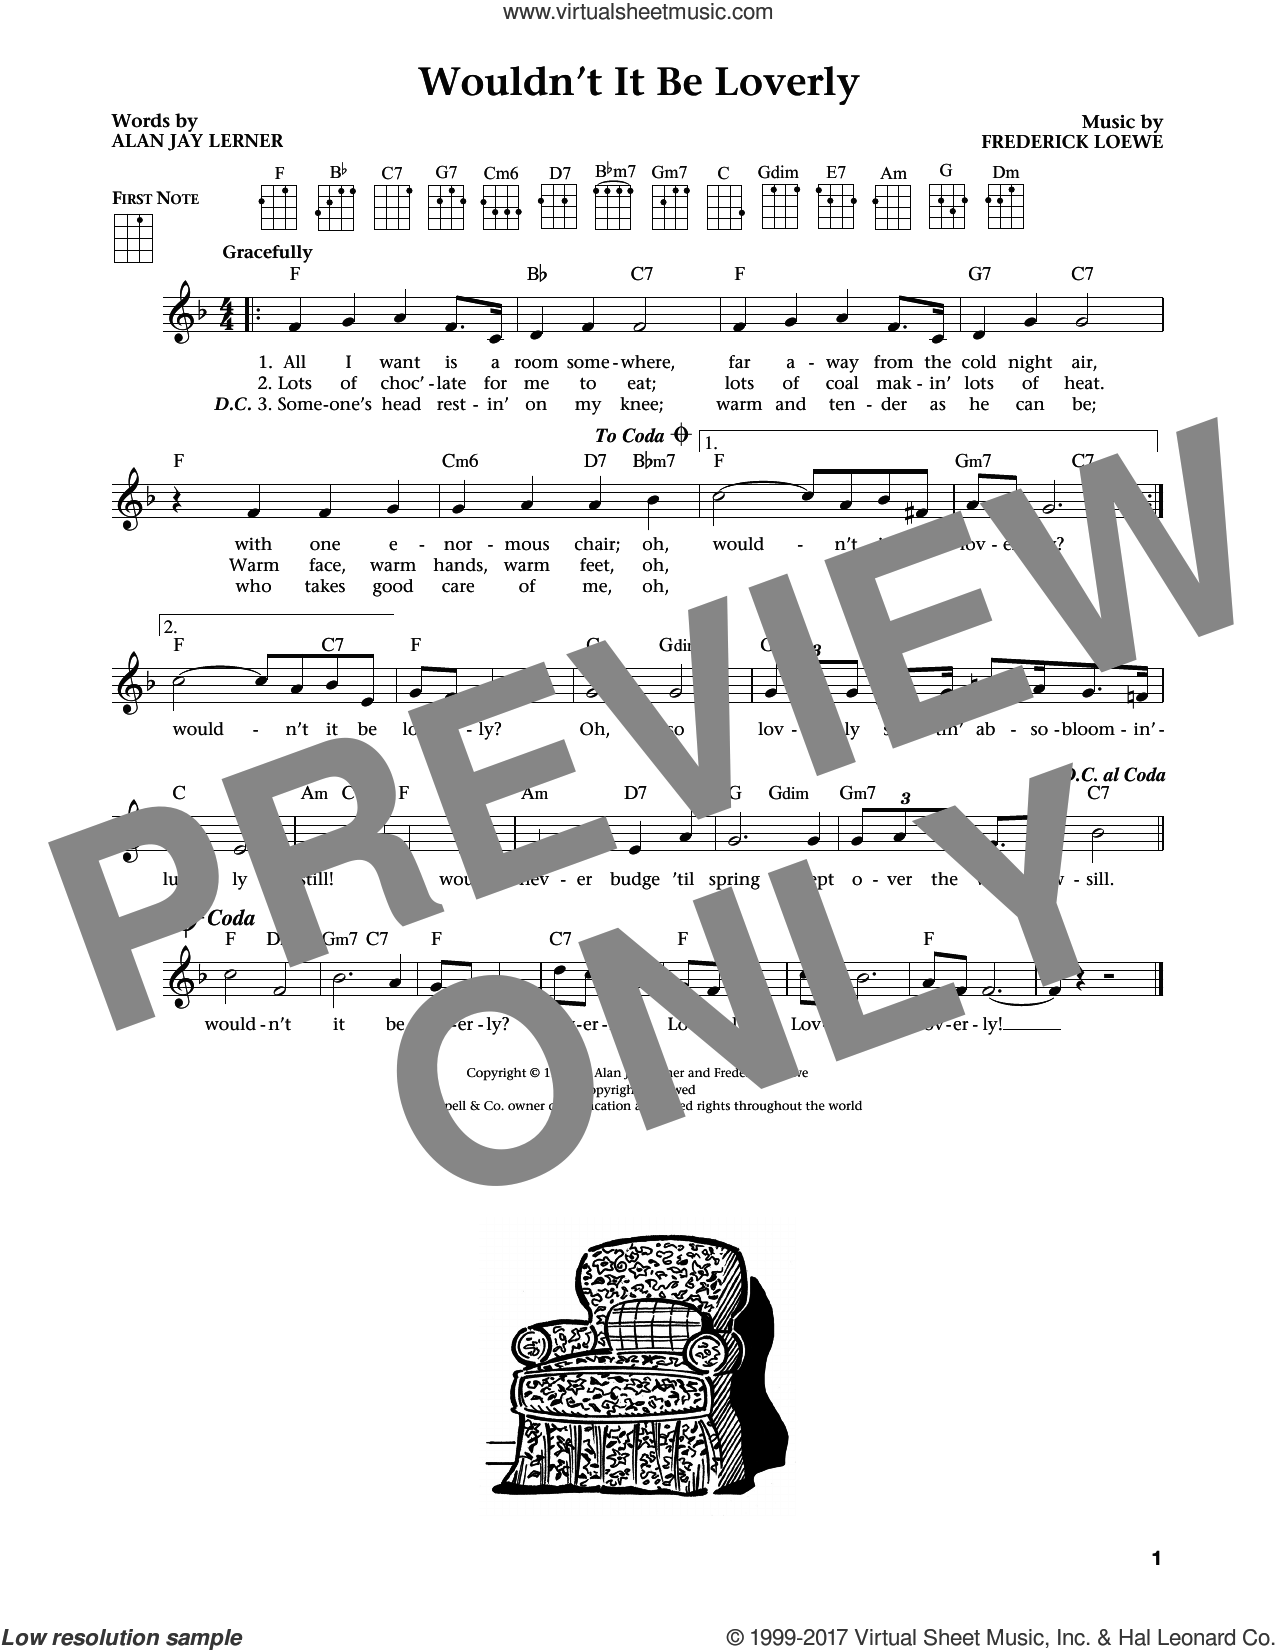 Wouldn't It Be Loverly (from The Daily Ukulele) (arr. Liz and Jim Beloff) sheet music for ukulele by Alan Jay Lerner, Jim Beloff, Liz Beloff and Frederick Loewe, intermediate skill level